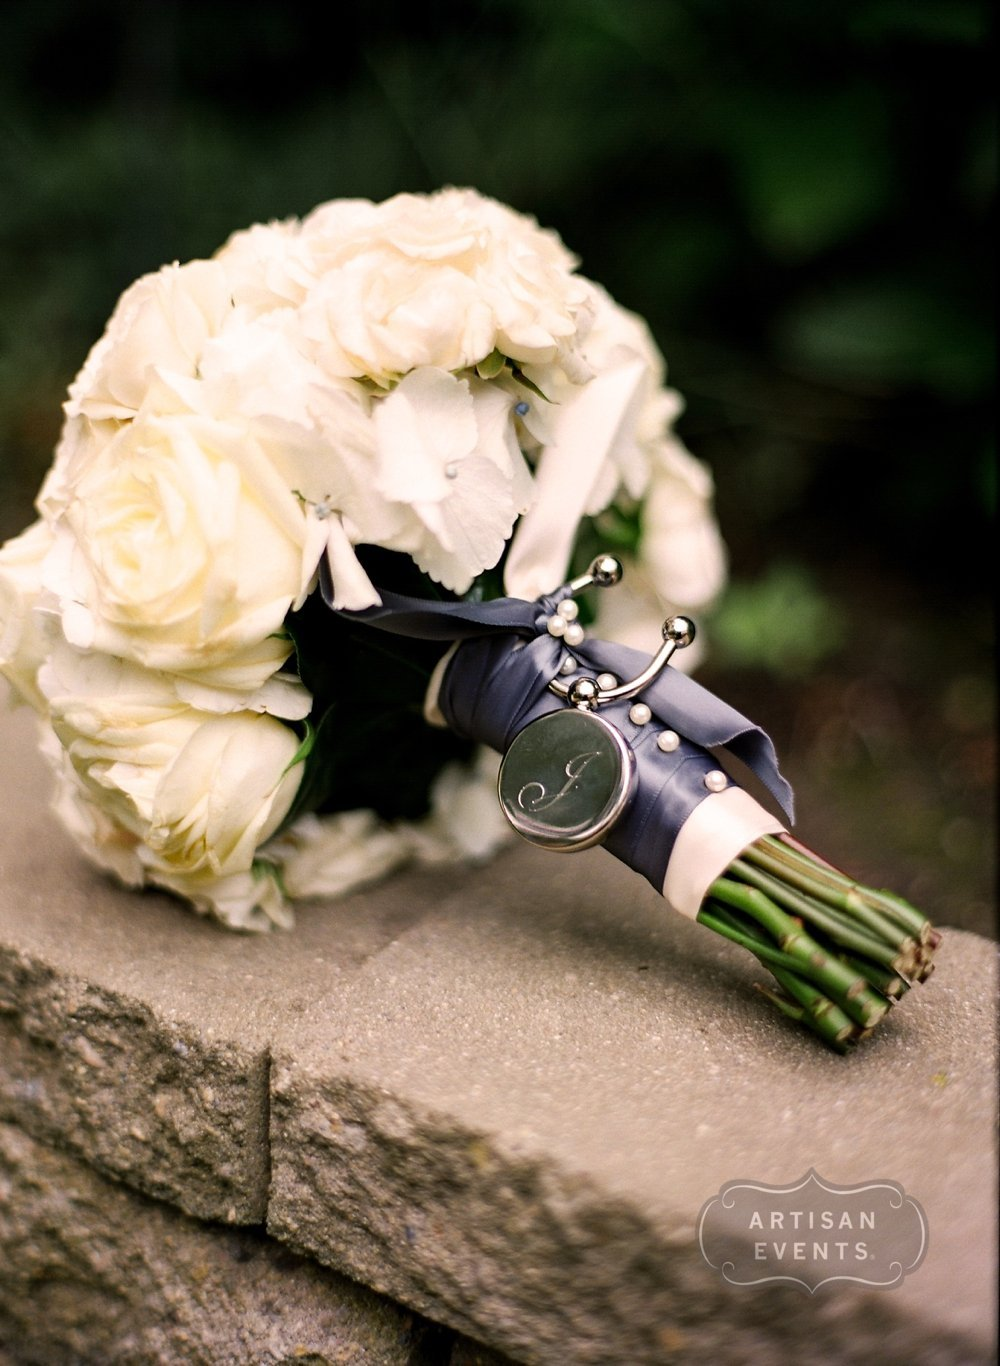 Posted by Artisan Events® - A Photographer professional